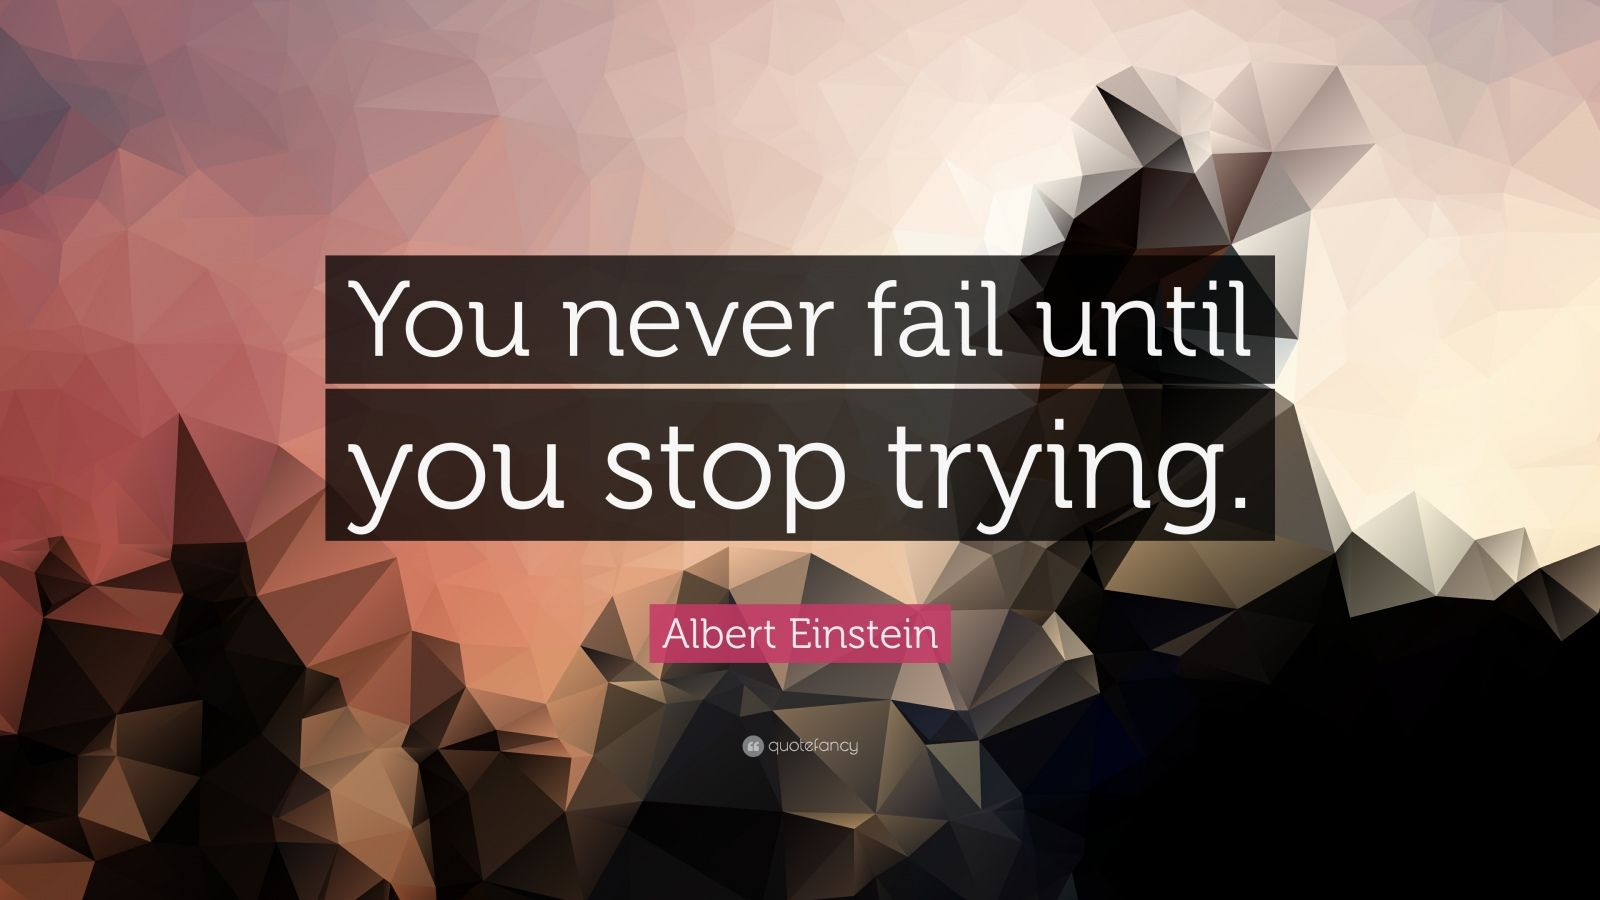 Albert Einstein Wallpaper Quotes Albert Einstein Quote You Never Fail Until You Stop